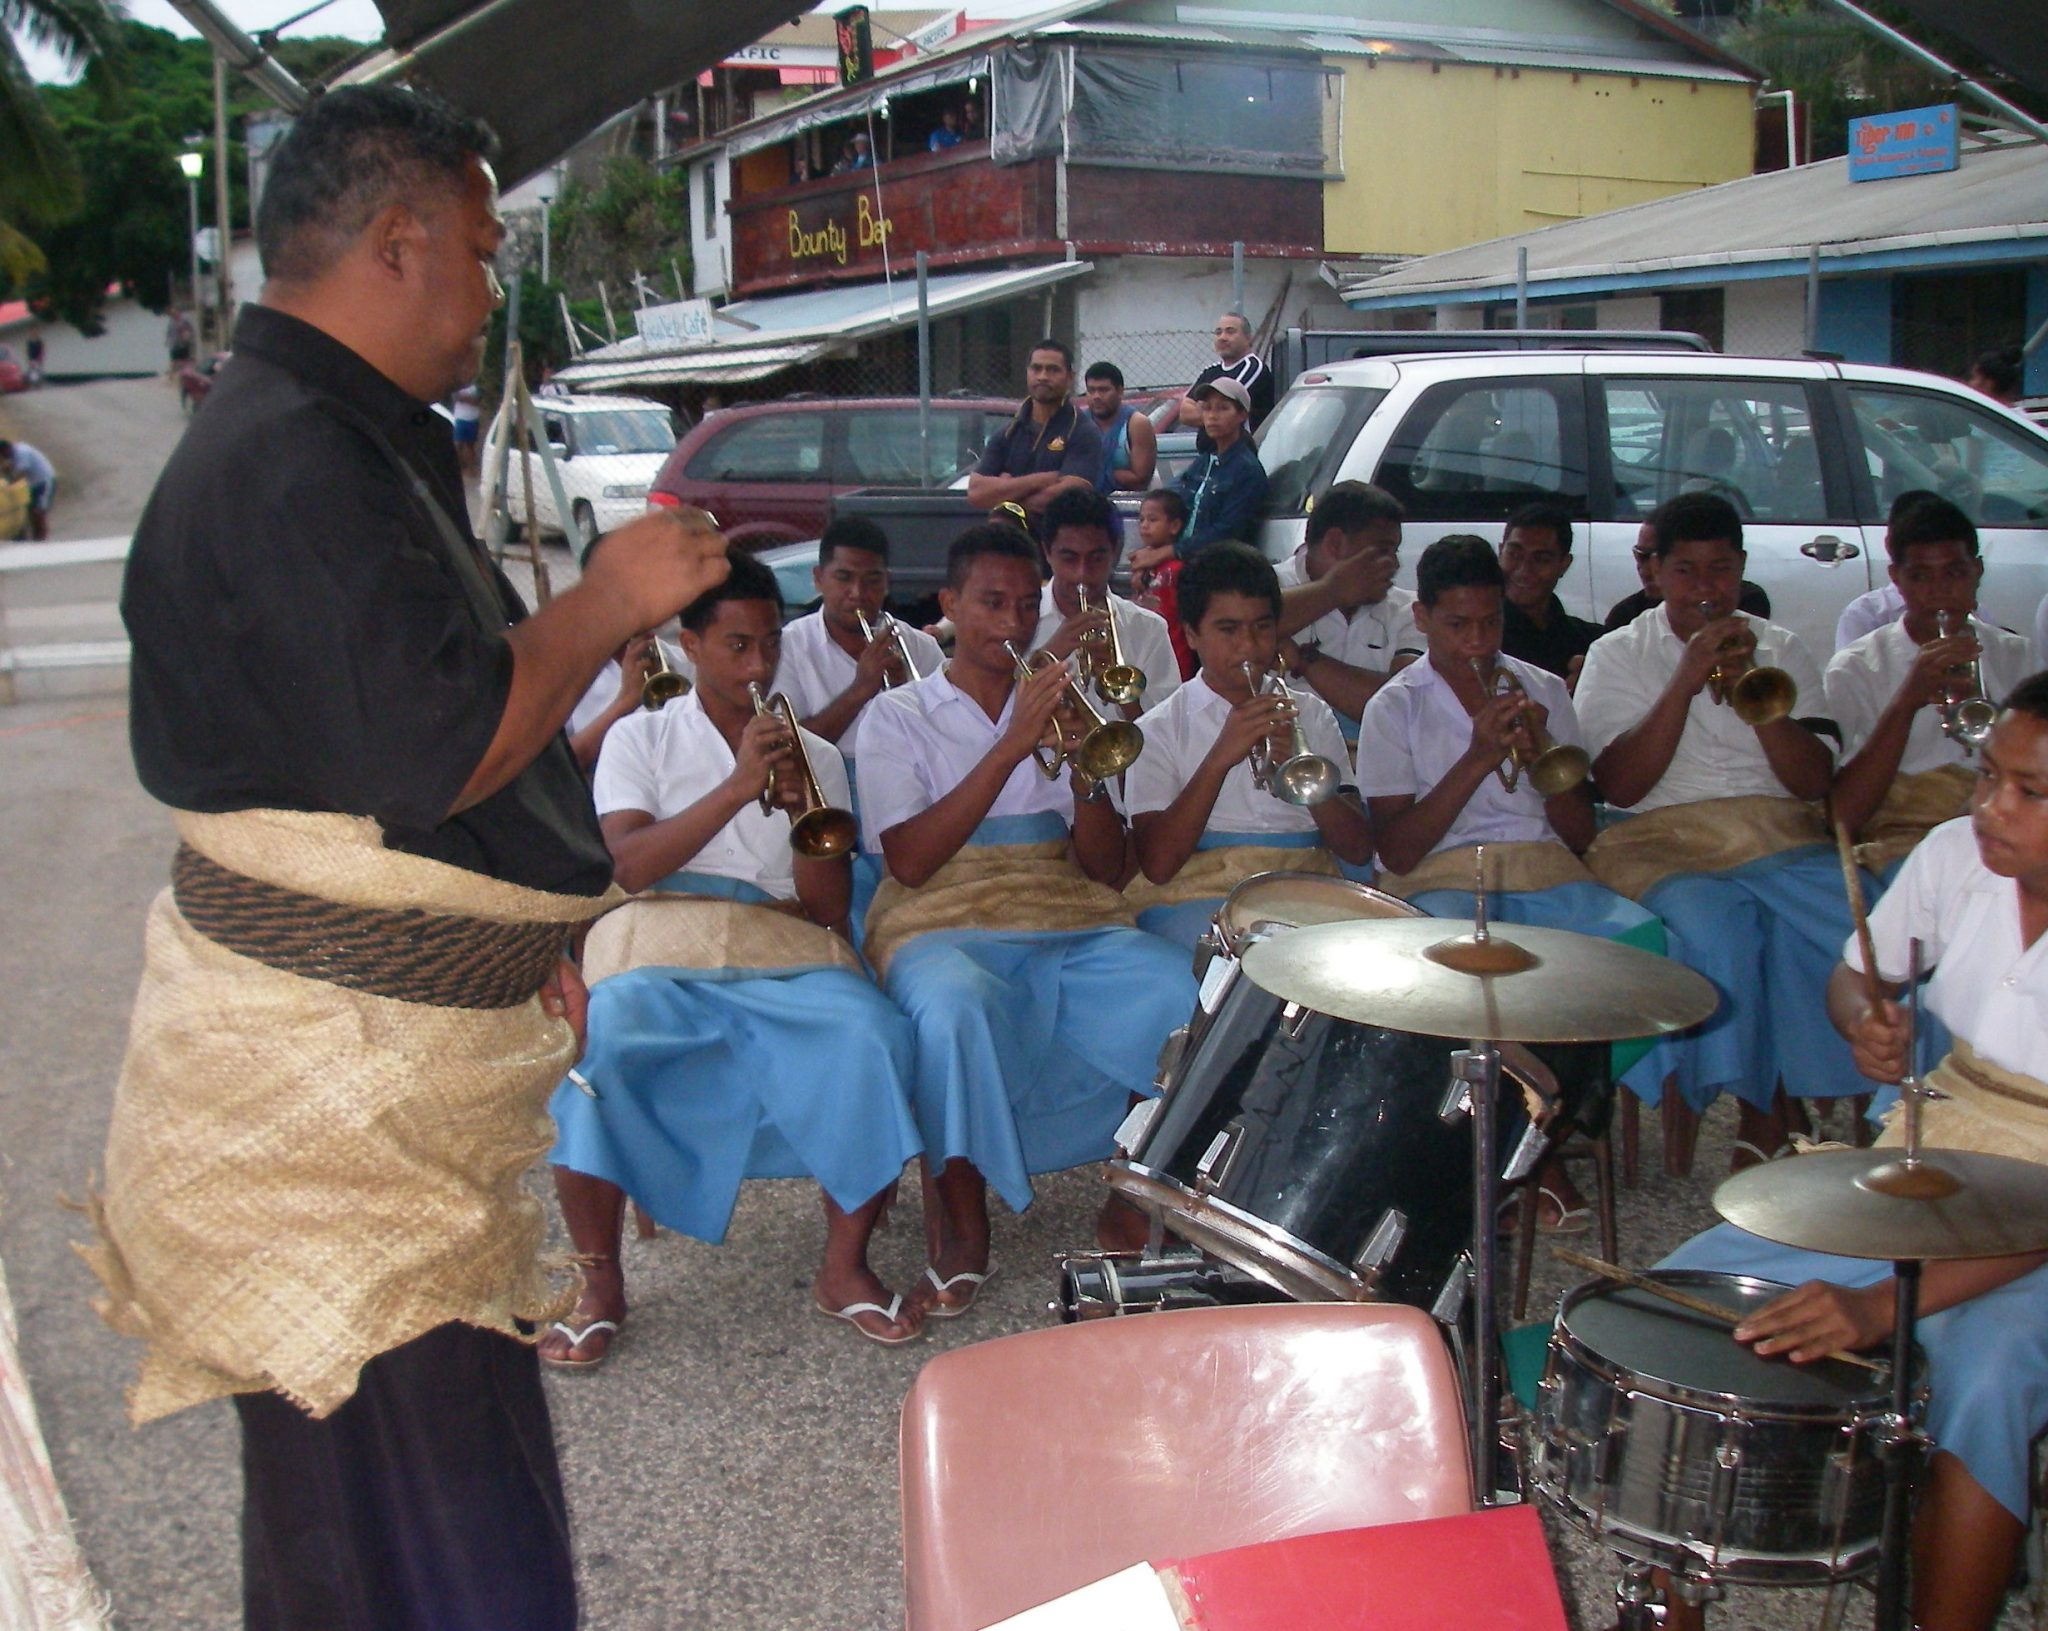 34. One of the local high school bands. The leader and the students are wearing the traditional woven hibiscus wrap showing allegance to the monarchy. The students also are wearing the wrap around pareas, their everyday uniform